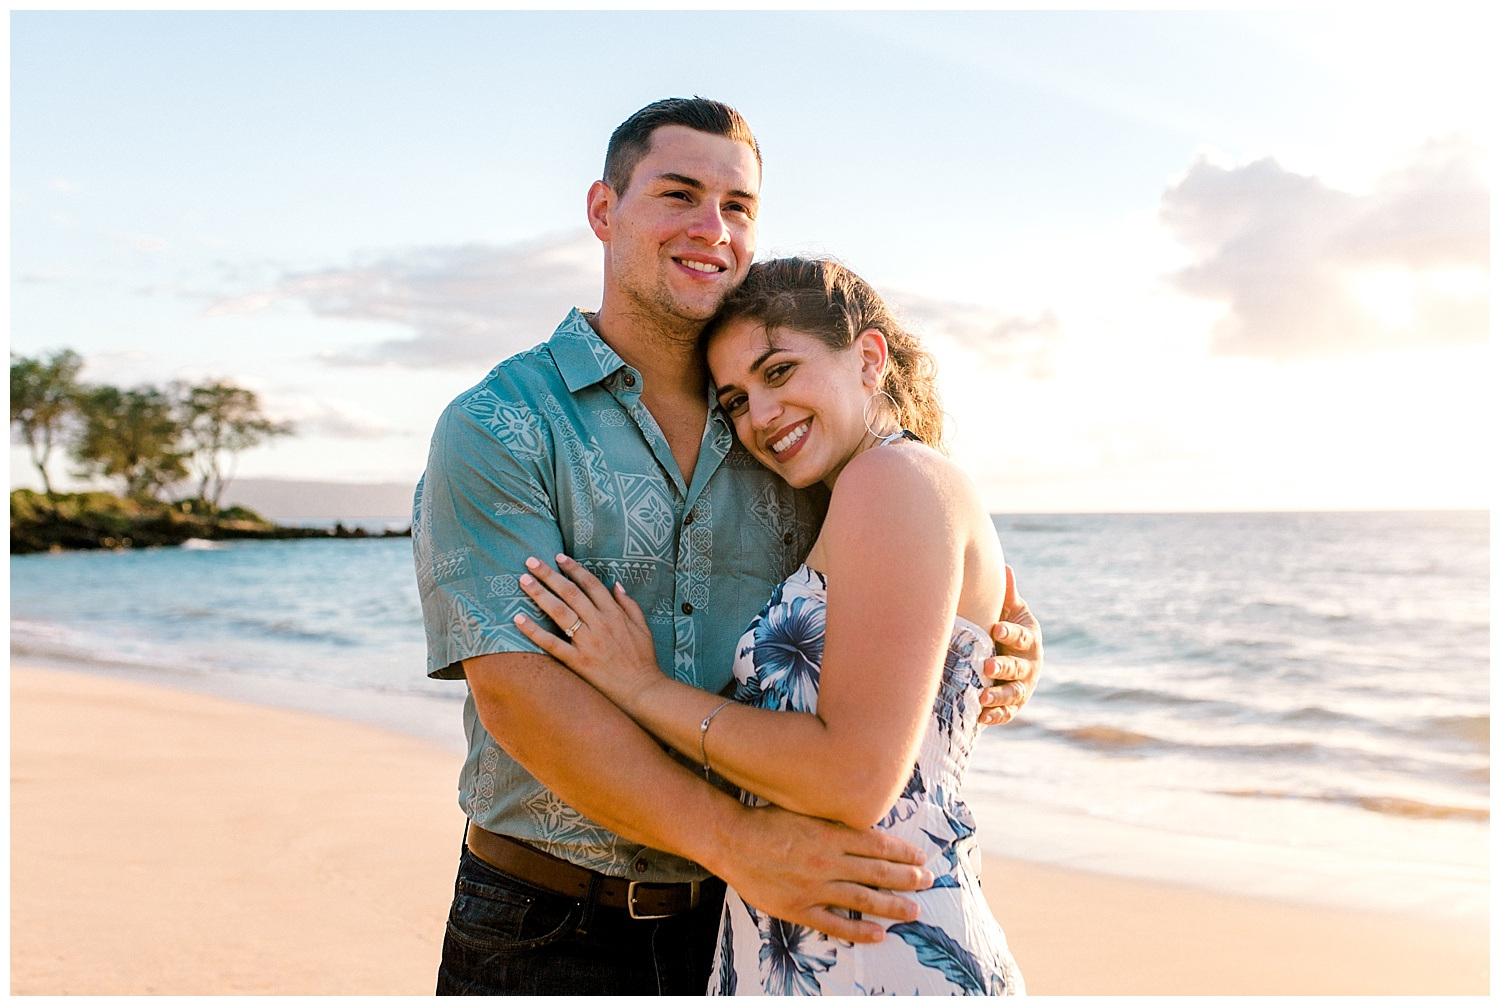 Sophia + Ross | Honeymoon Session at Maluaka Beach, Maui